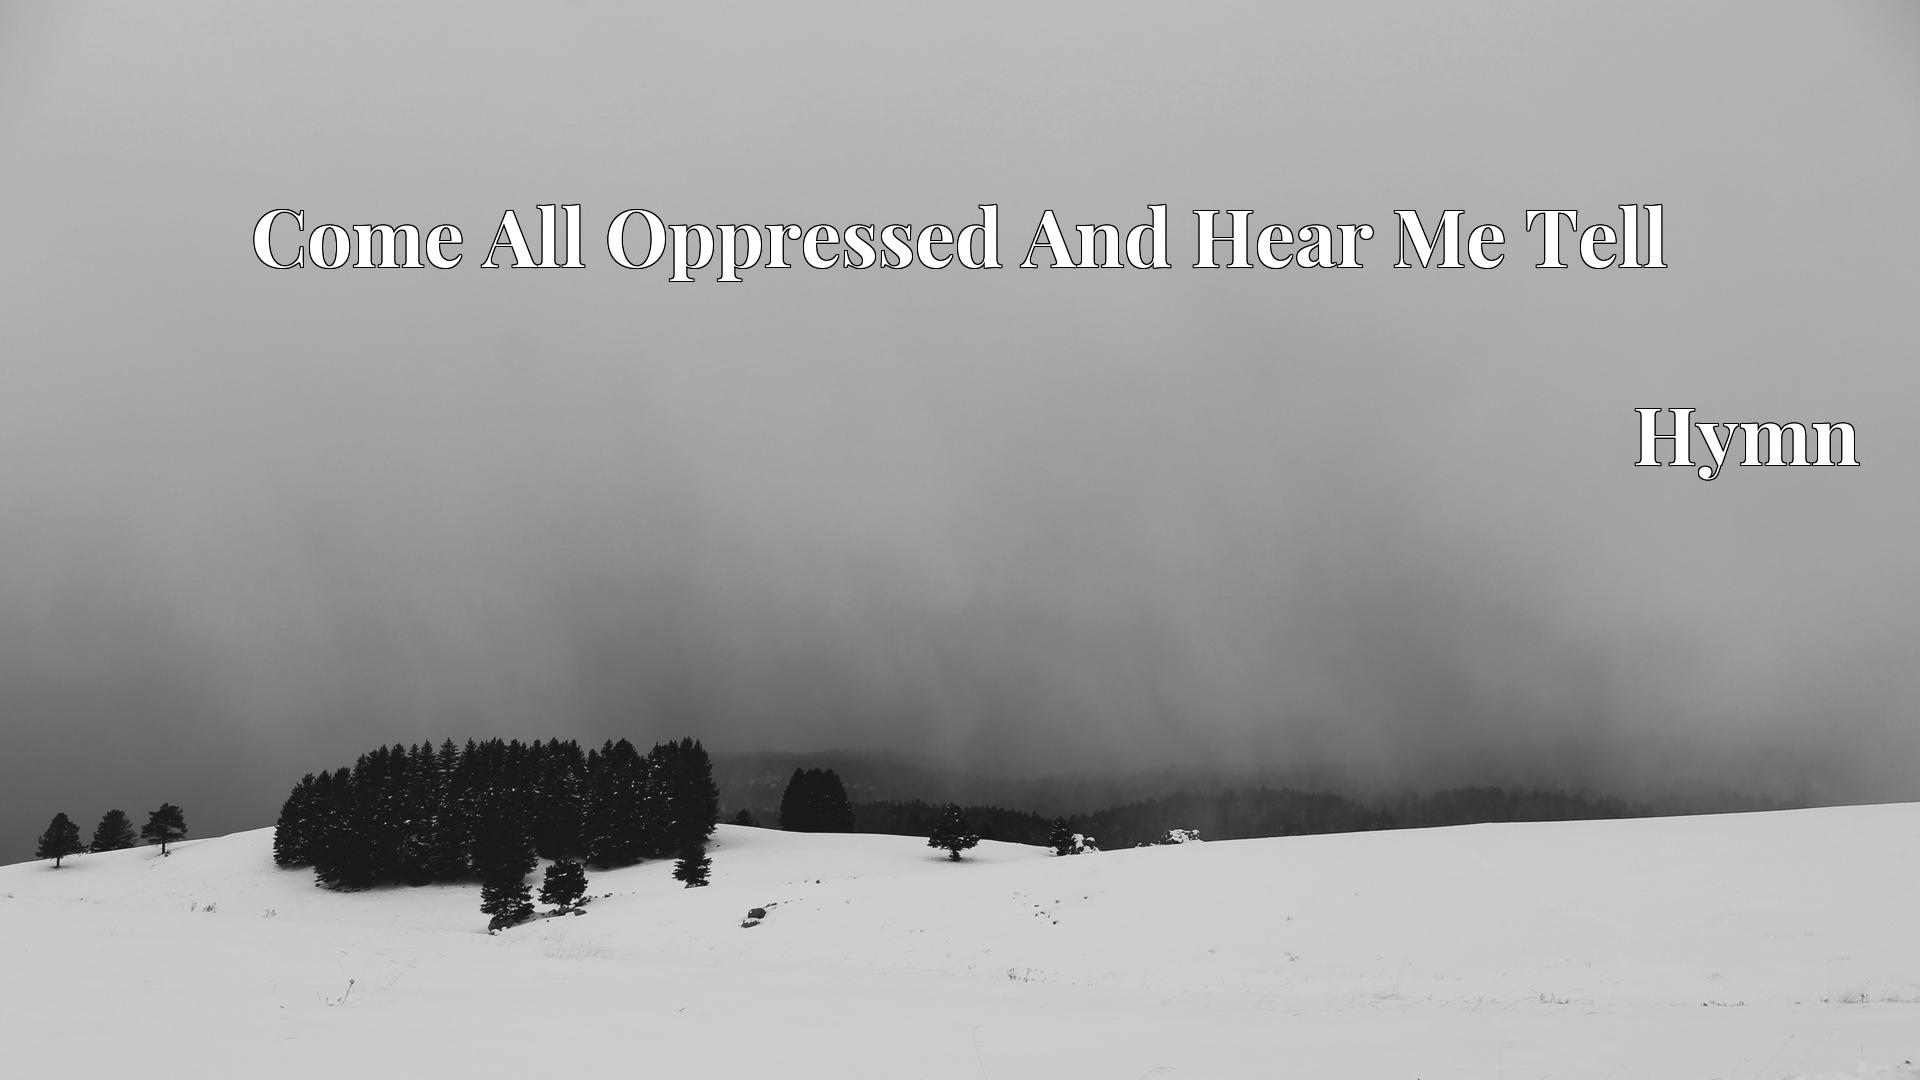 Come All Oppressed And Hear Me Tell - Hymn